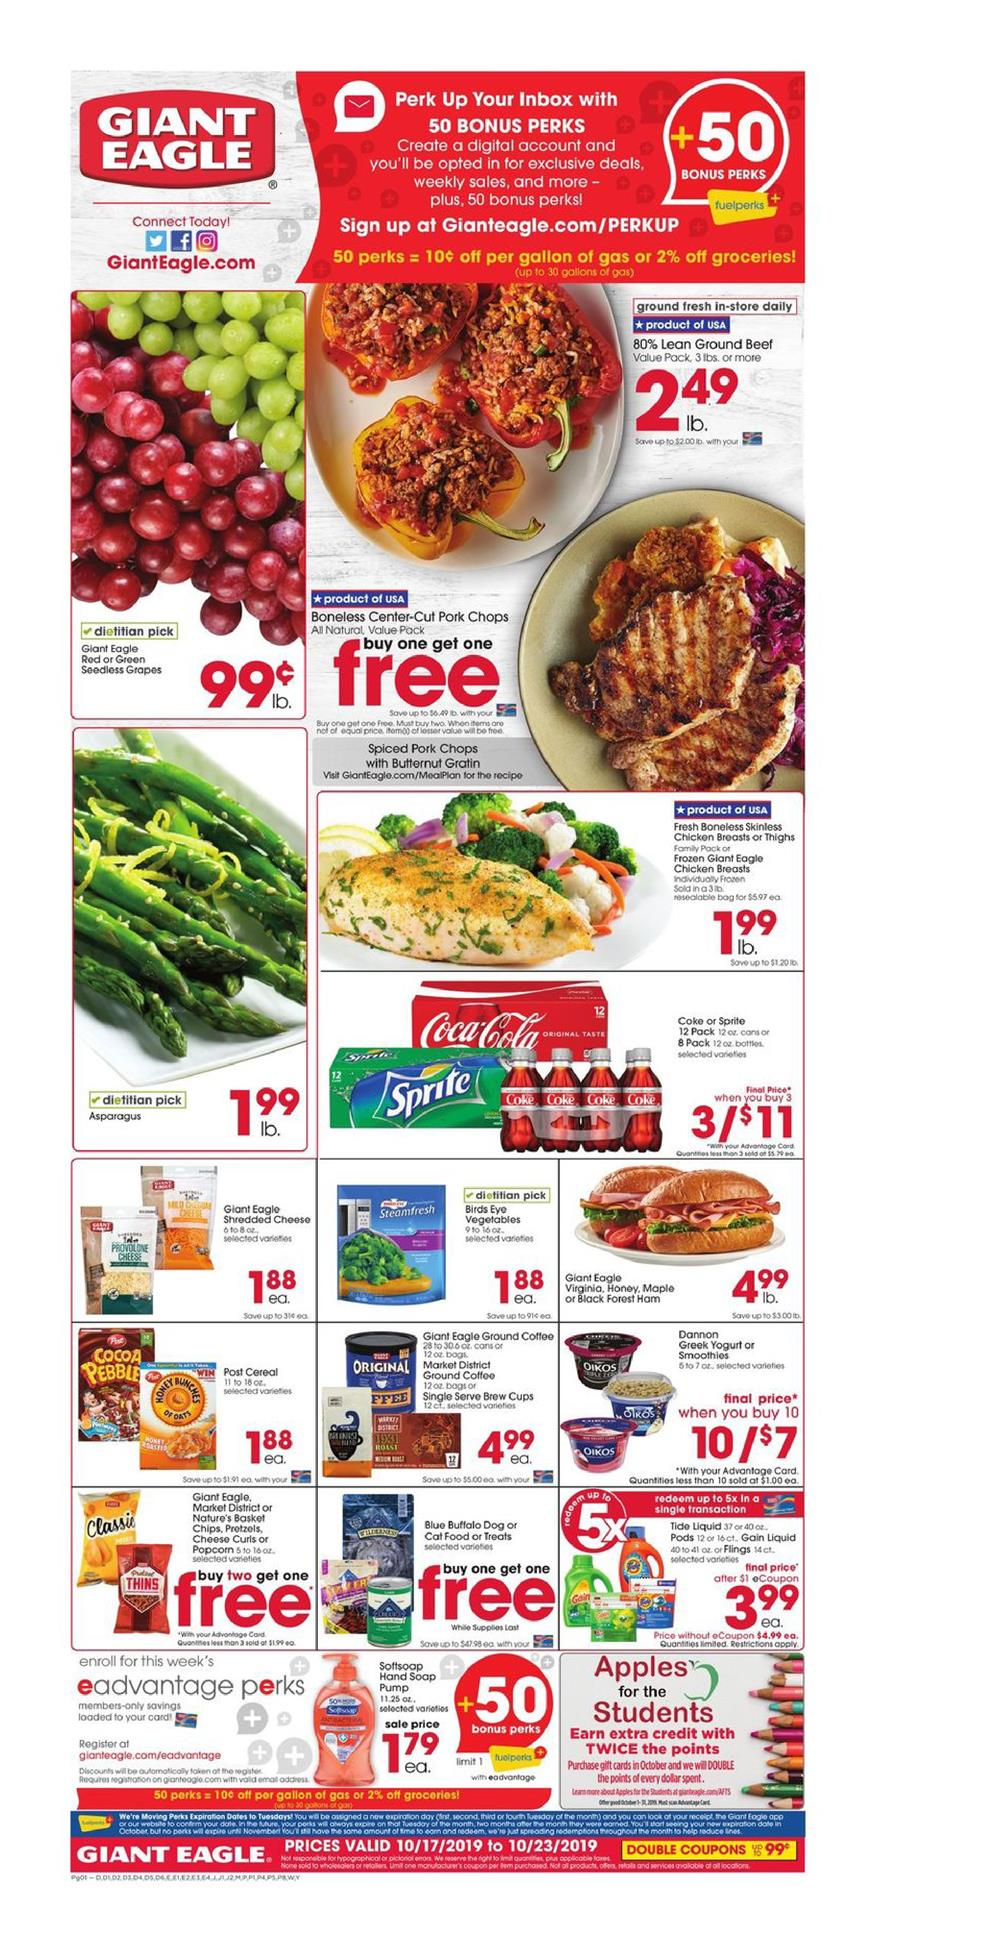 Cvs Pharmacy Coupons >> Giant Eagle Ad Oct 17 - 23, 2019